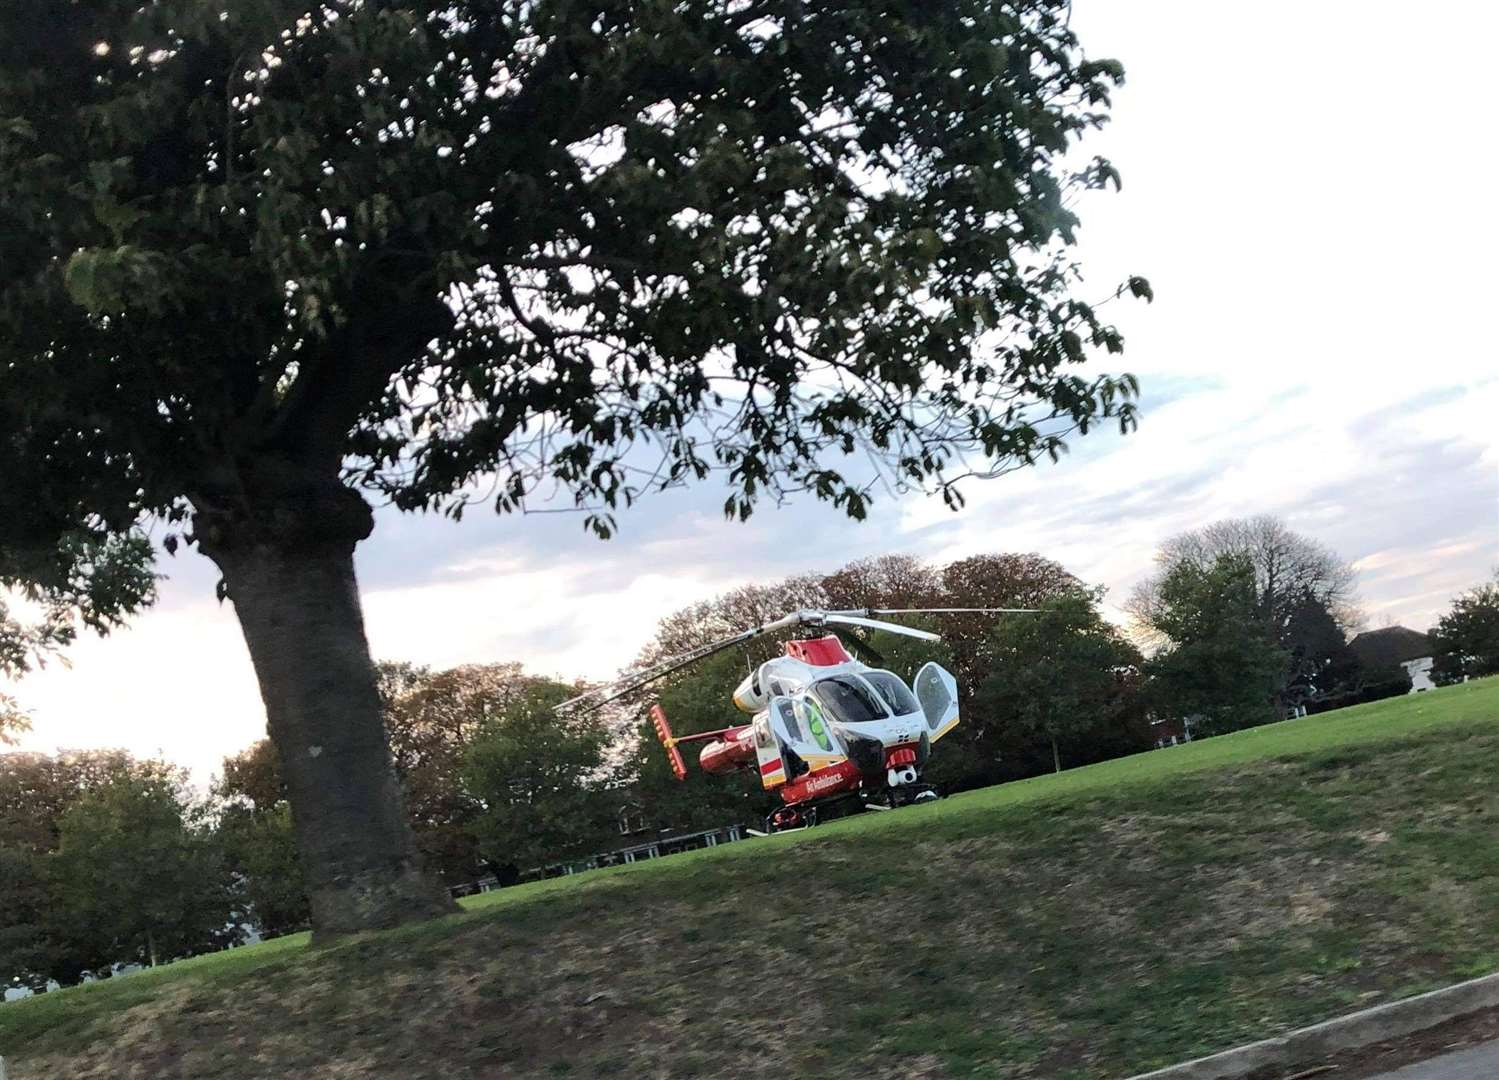 An air ambulance landed on the grass at Victoria Park